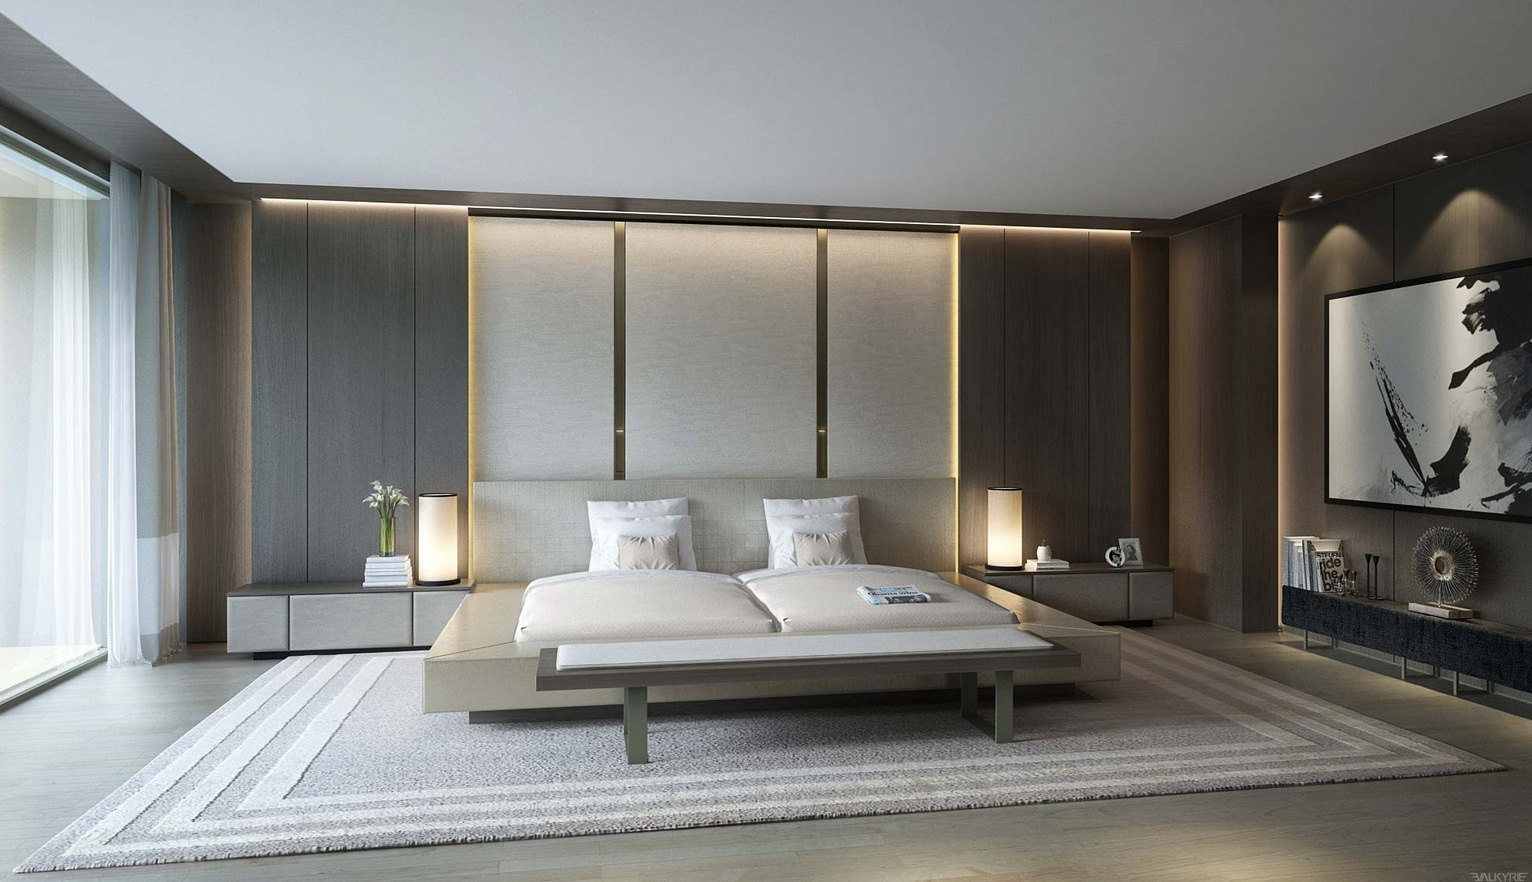 Simple Modern Bedroom 21 Cool Bedrooms For Clean And Simple Design Inspiration